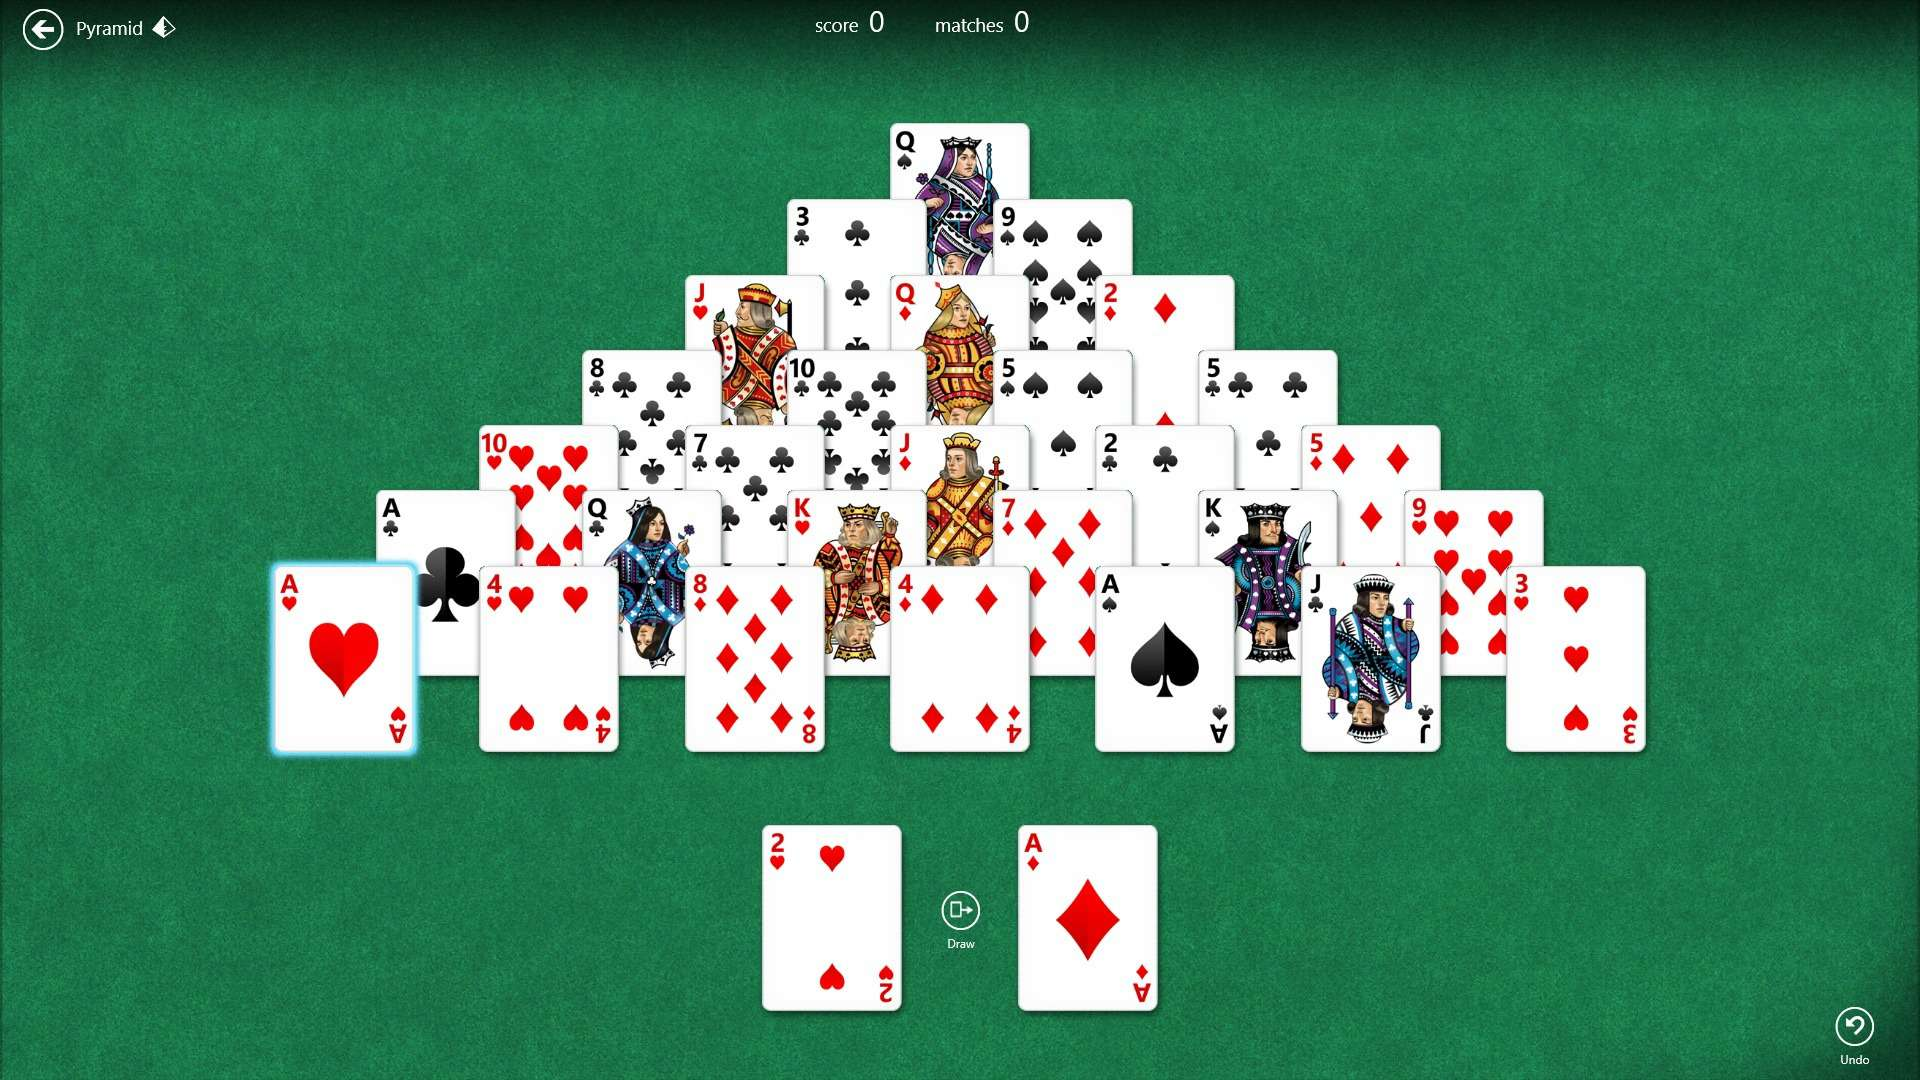 How To Play Windows Games Like Minesweeper Solitaire